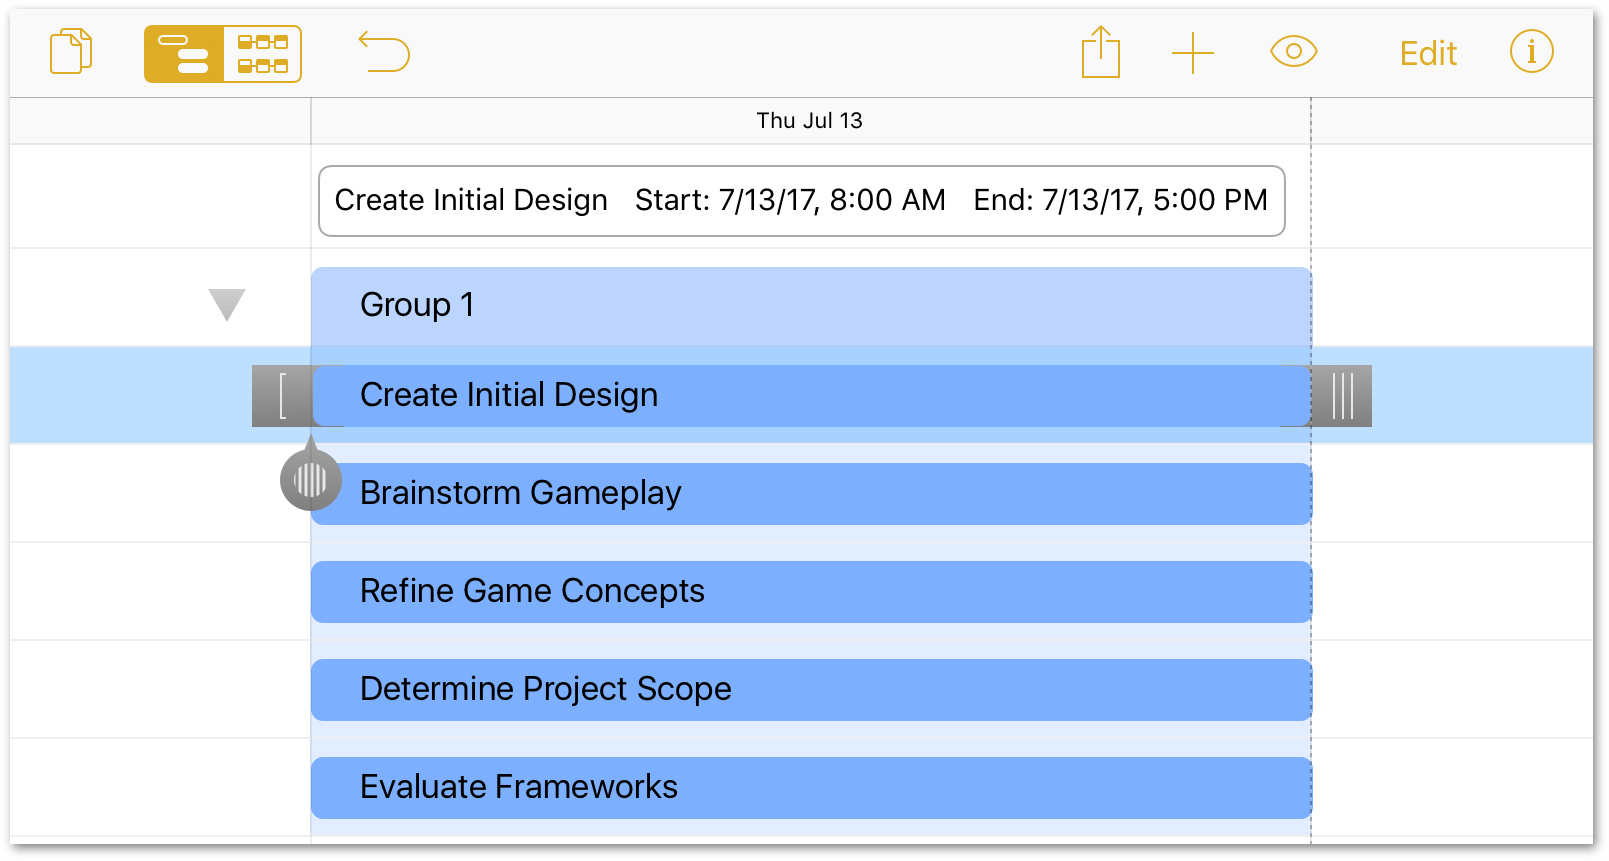 The Create Initial Design task, selected in the project editor